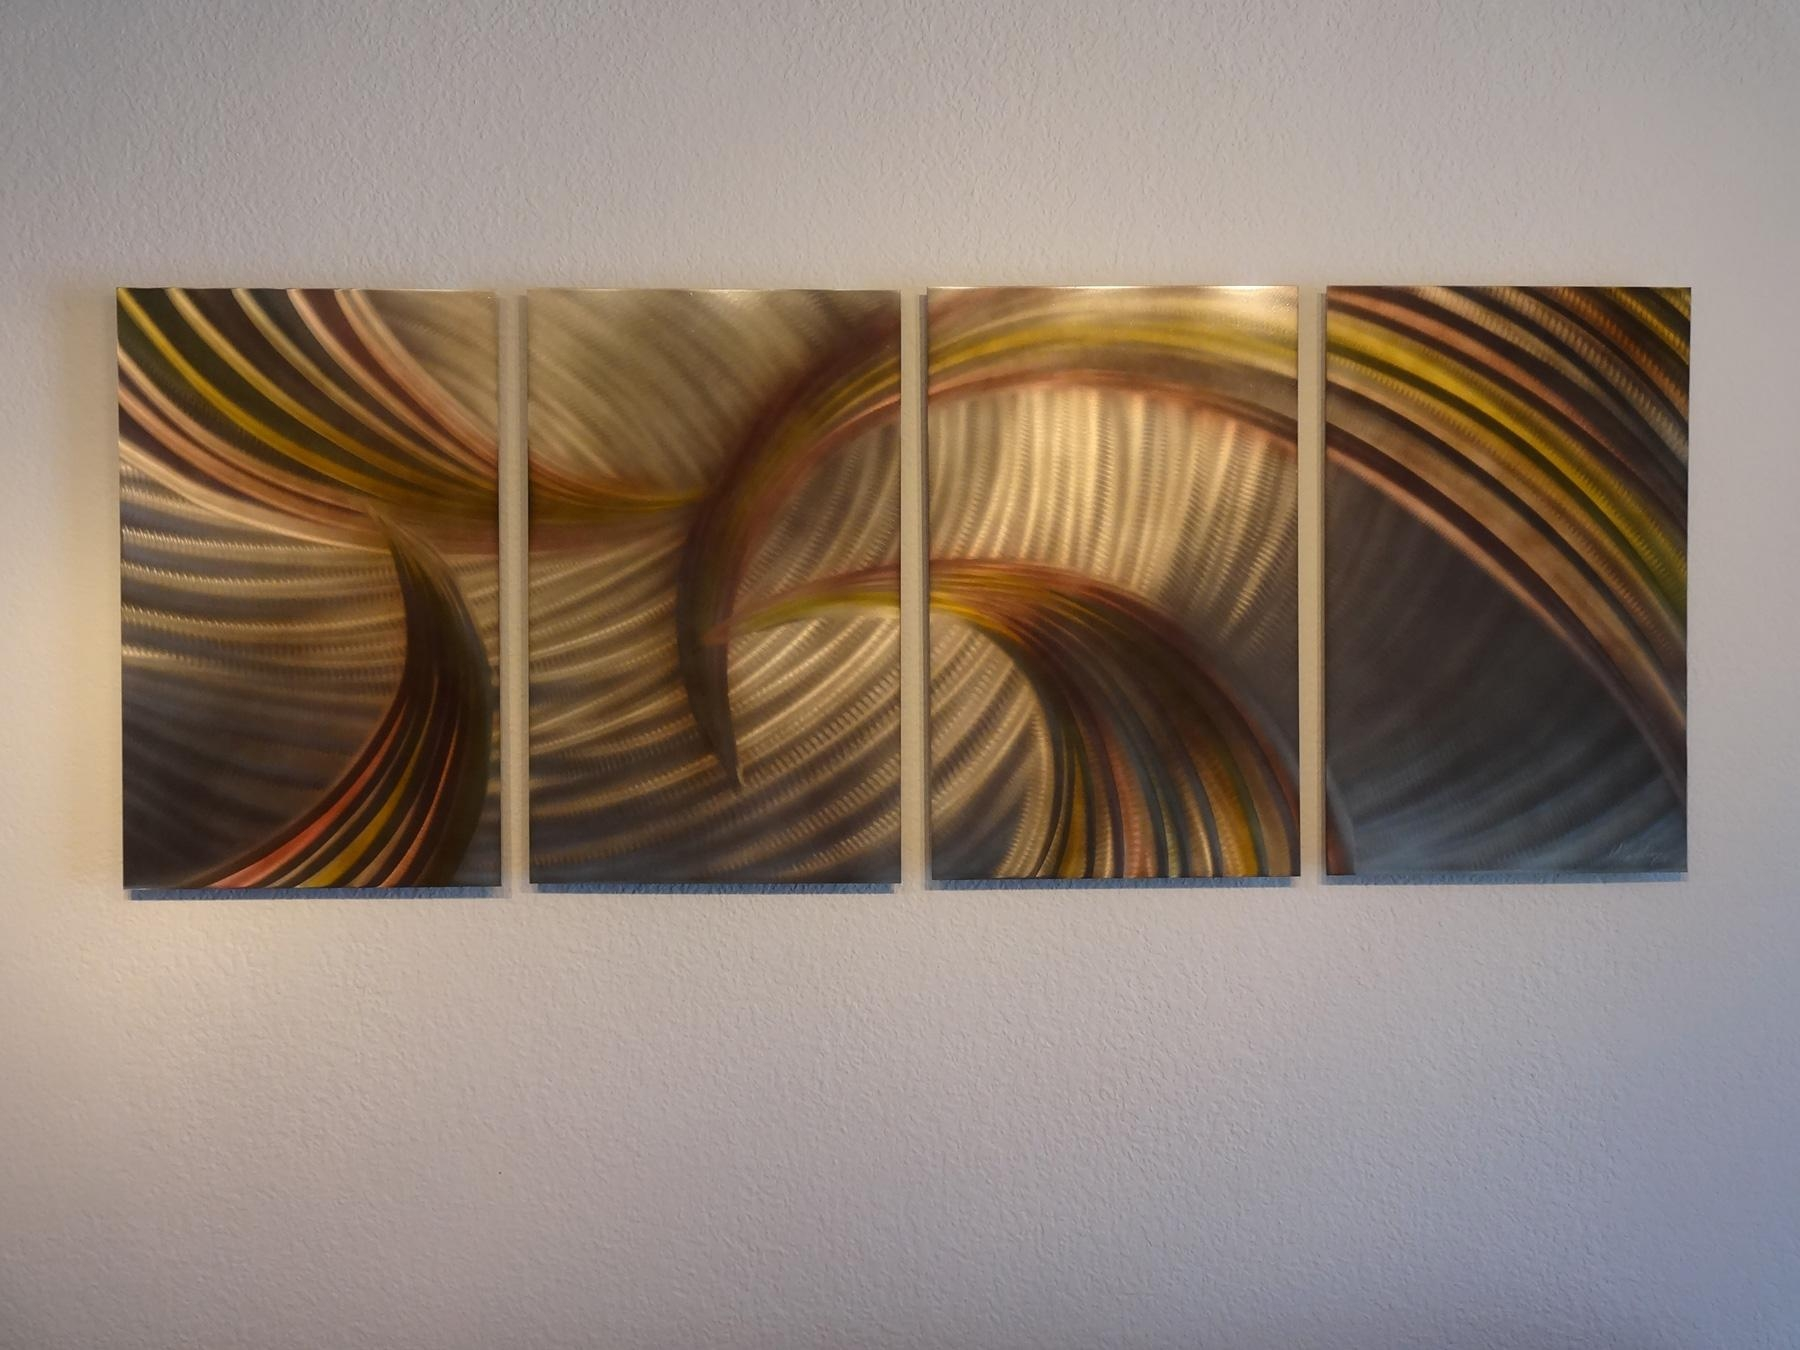 Tempest Bronze – Abstract Metal Wall Art Contemporary Modern Decor Pertaining To Contemporary Metal Wall Art Sculpture (Image 17 of 20)